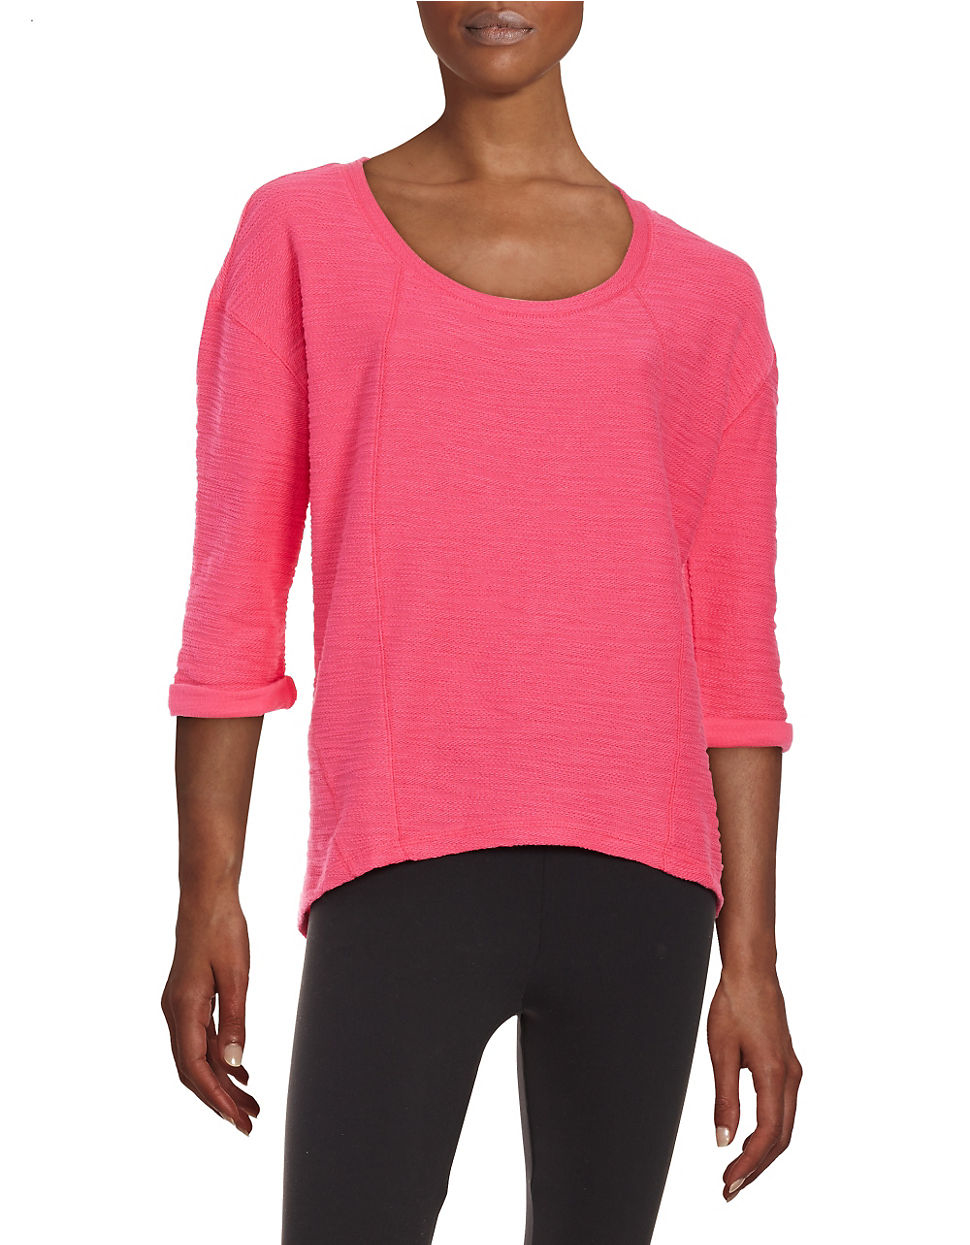 Marc new york textured performance top in pink lyst for Best dress shirts nyc